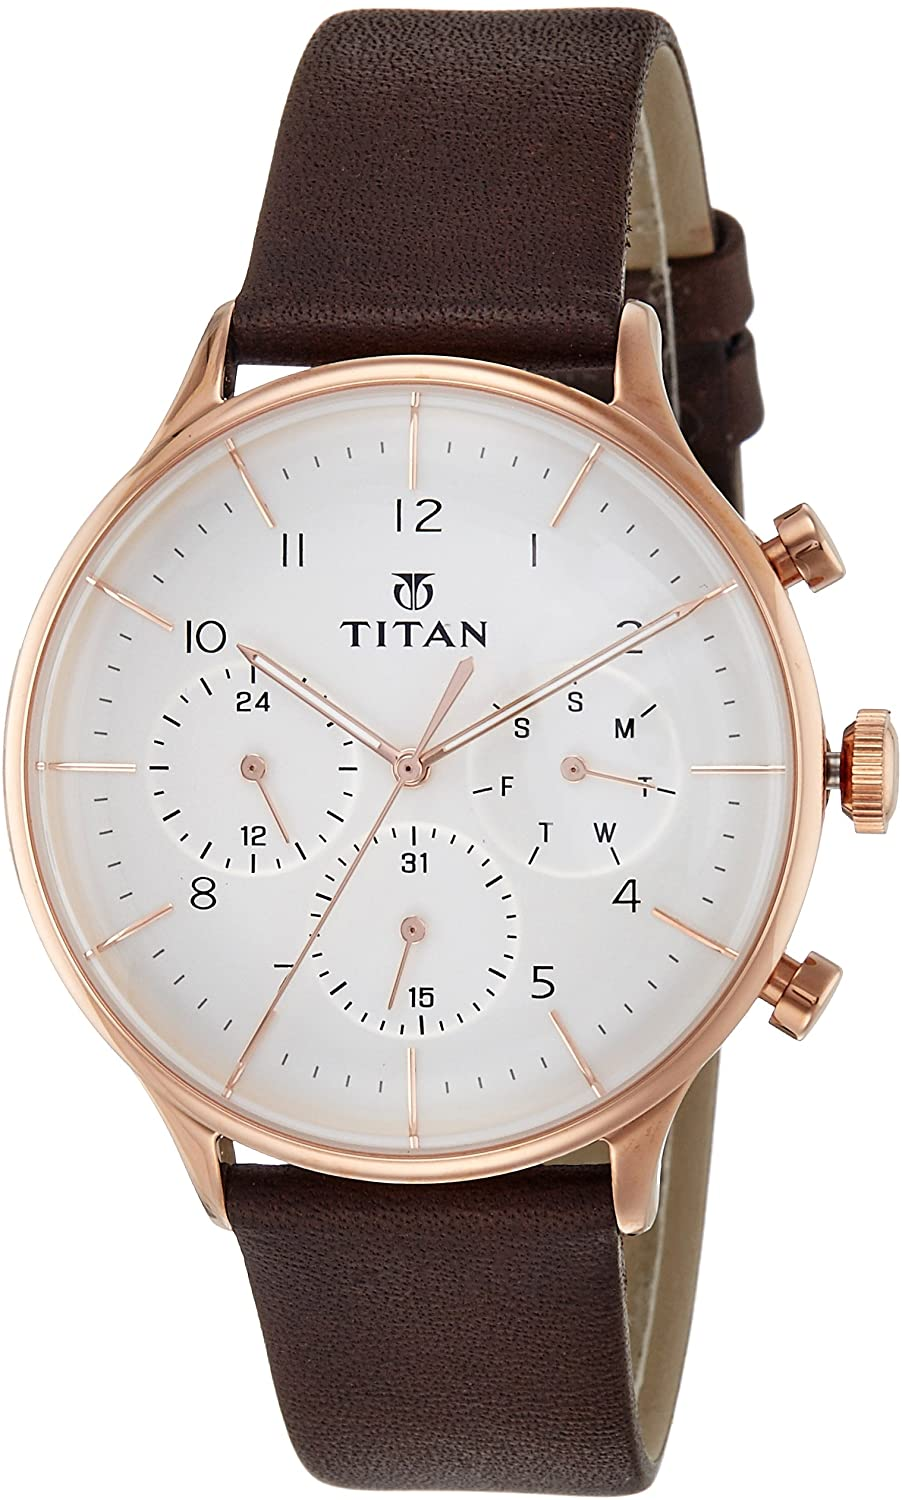 Titan Men's On Trend Chronograph Watch - Quartz, Water Resistant